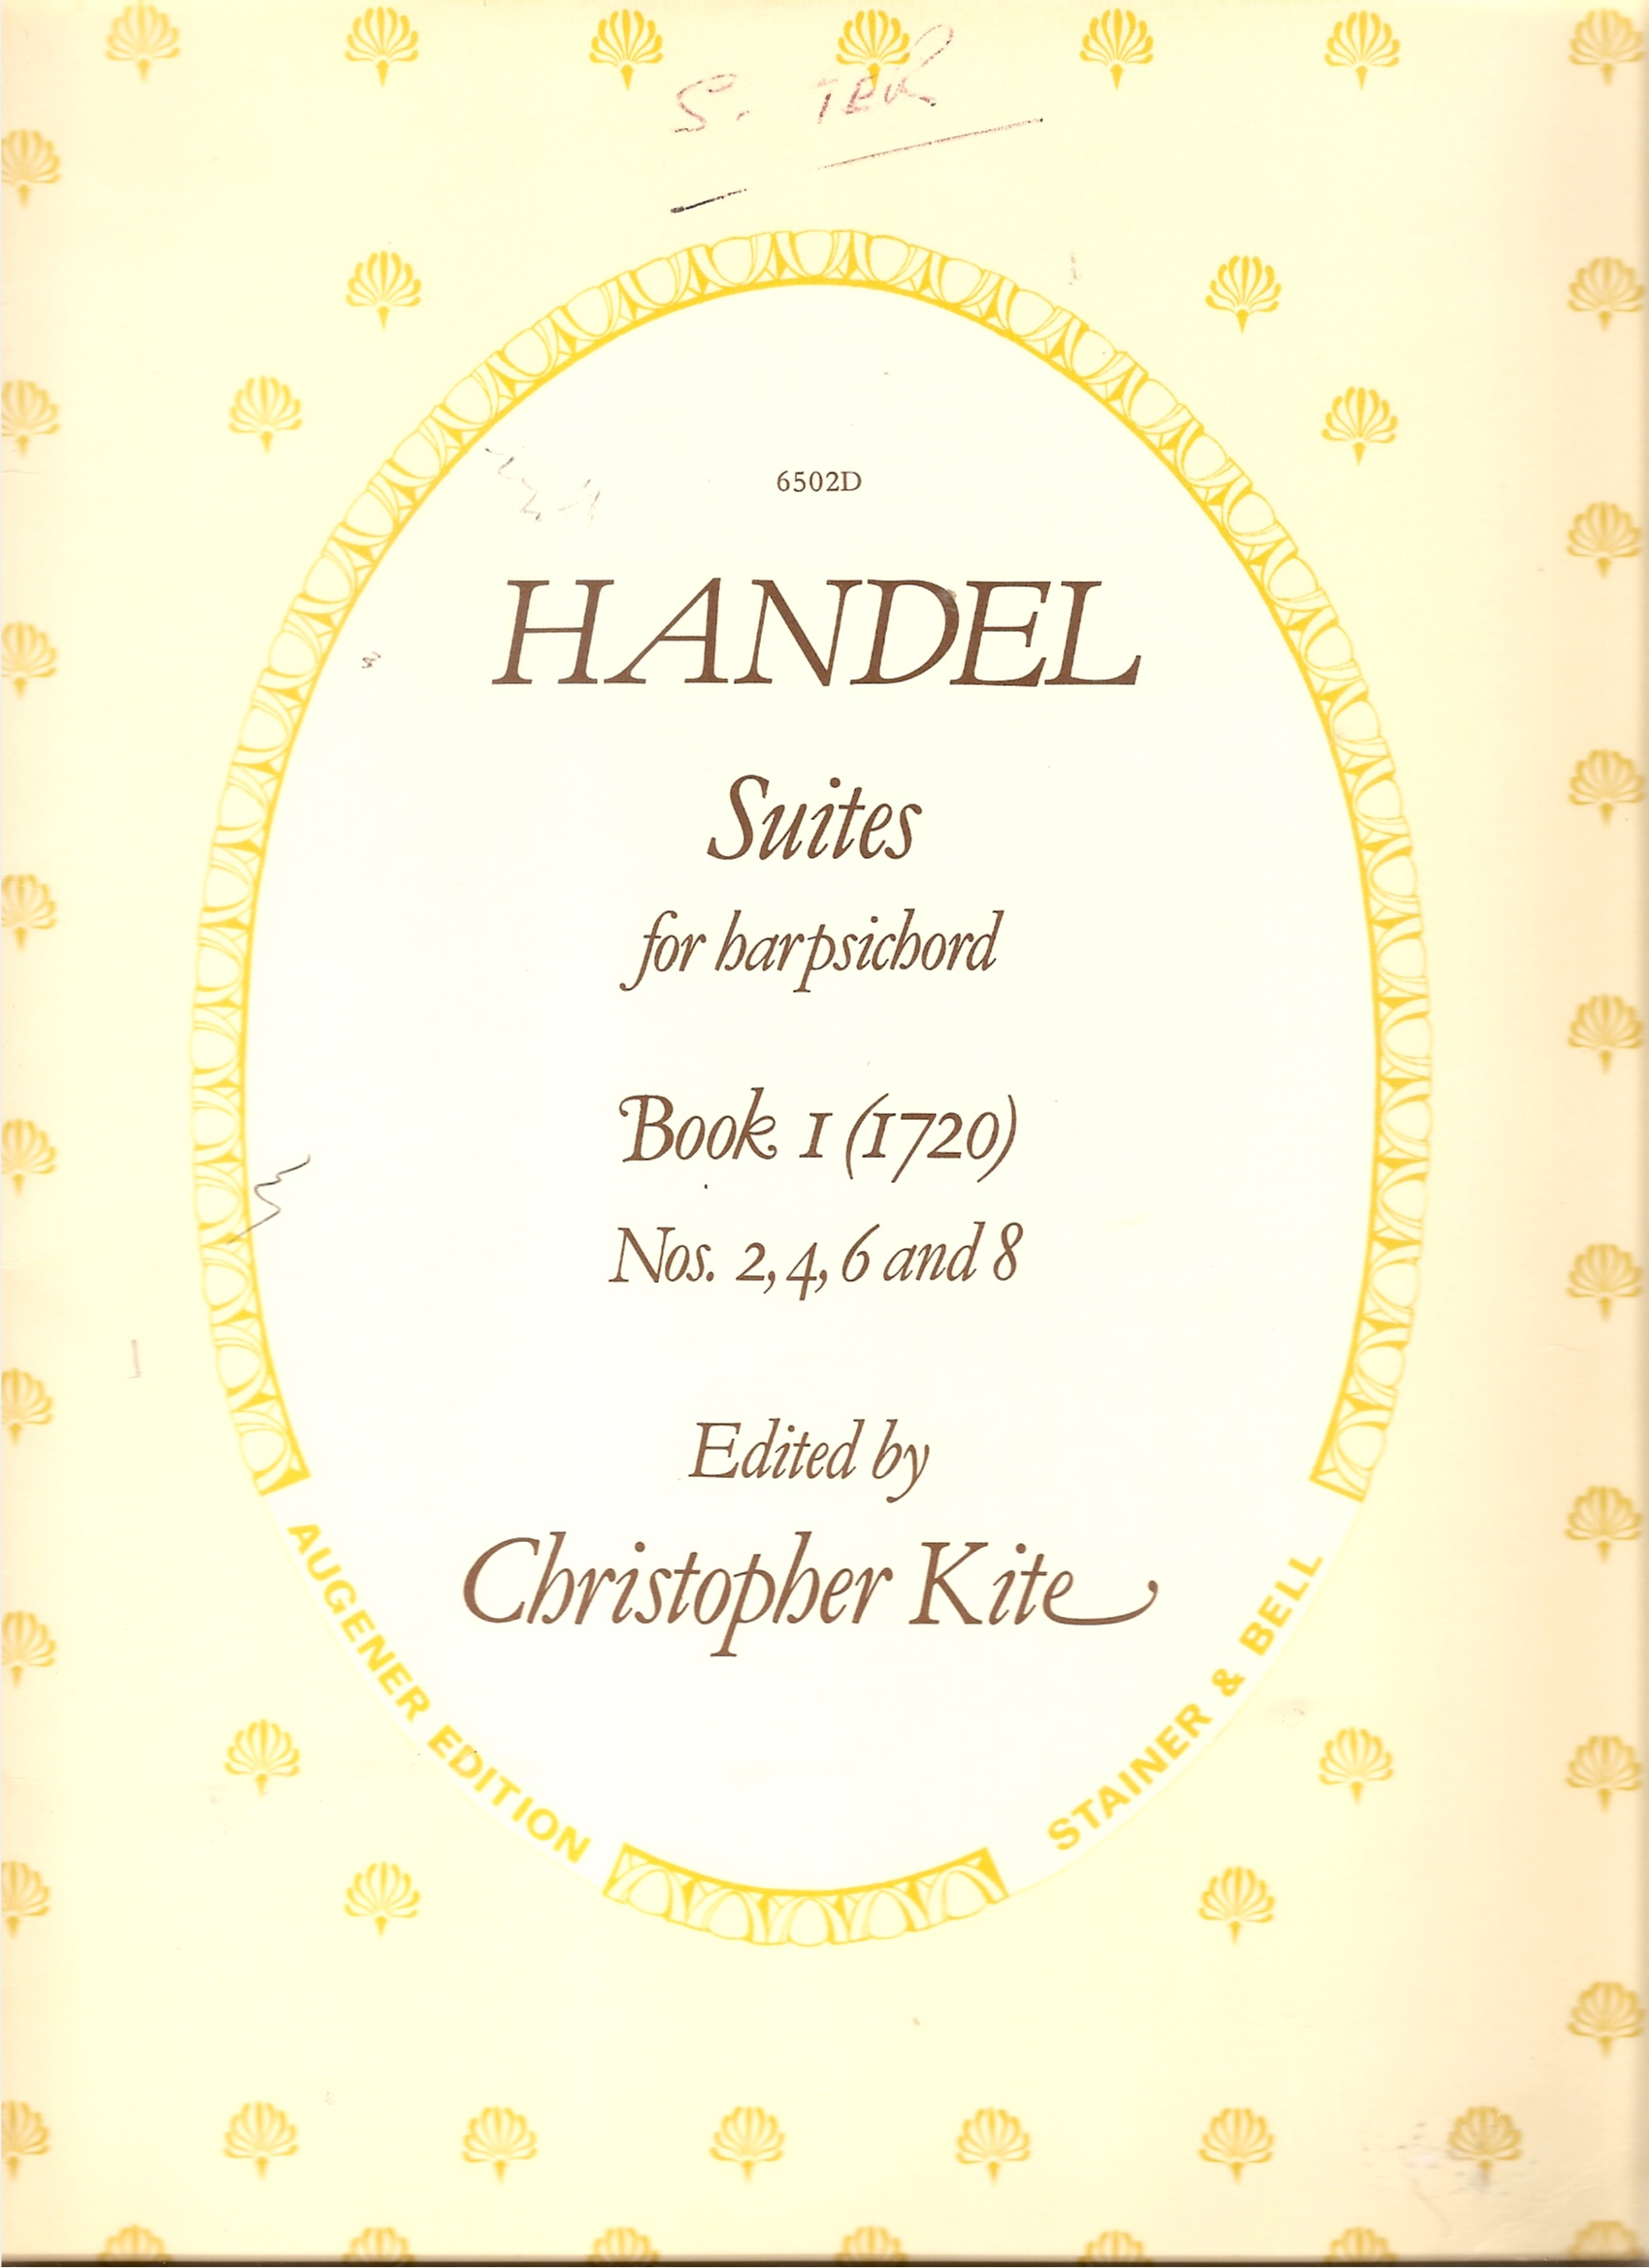 Image for Suites for Harpsichord. Book 1 (1720) Nos 2, 4, 6 and 8